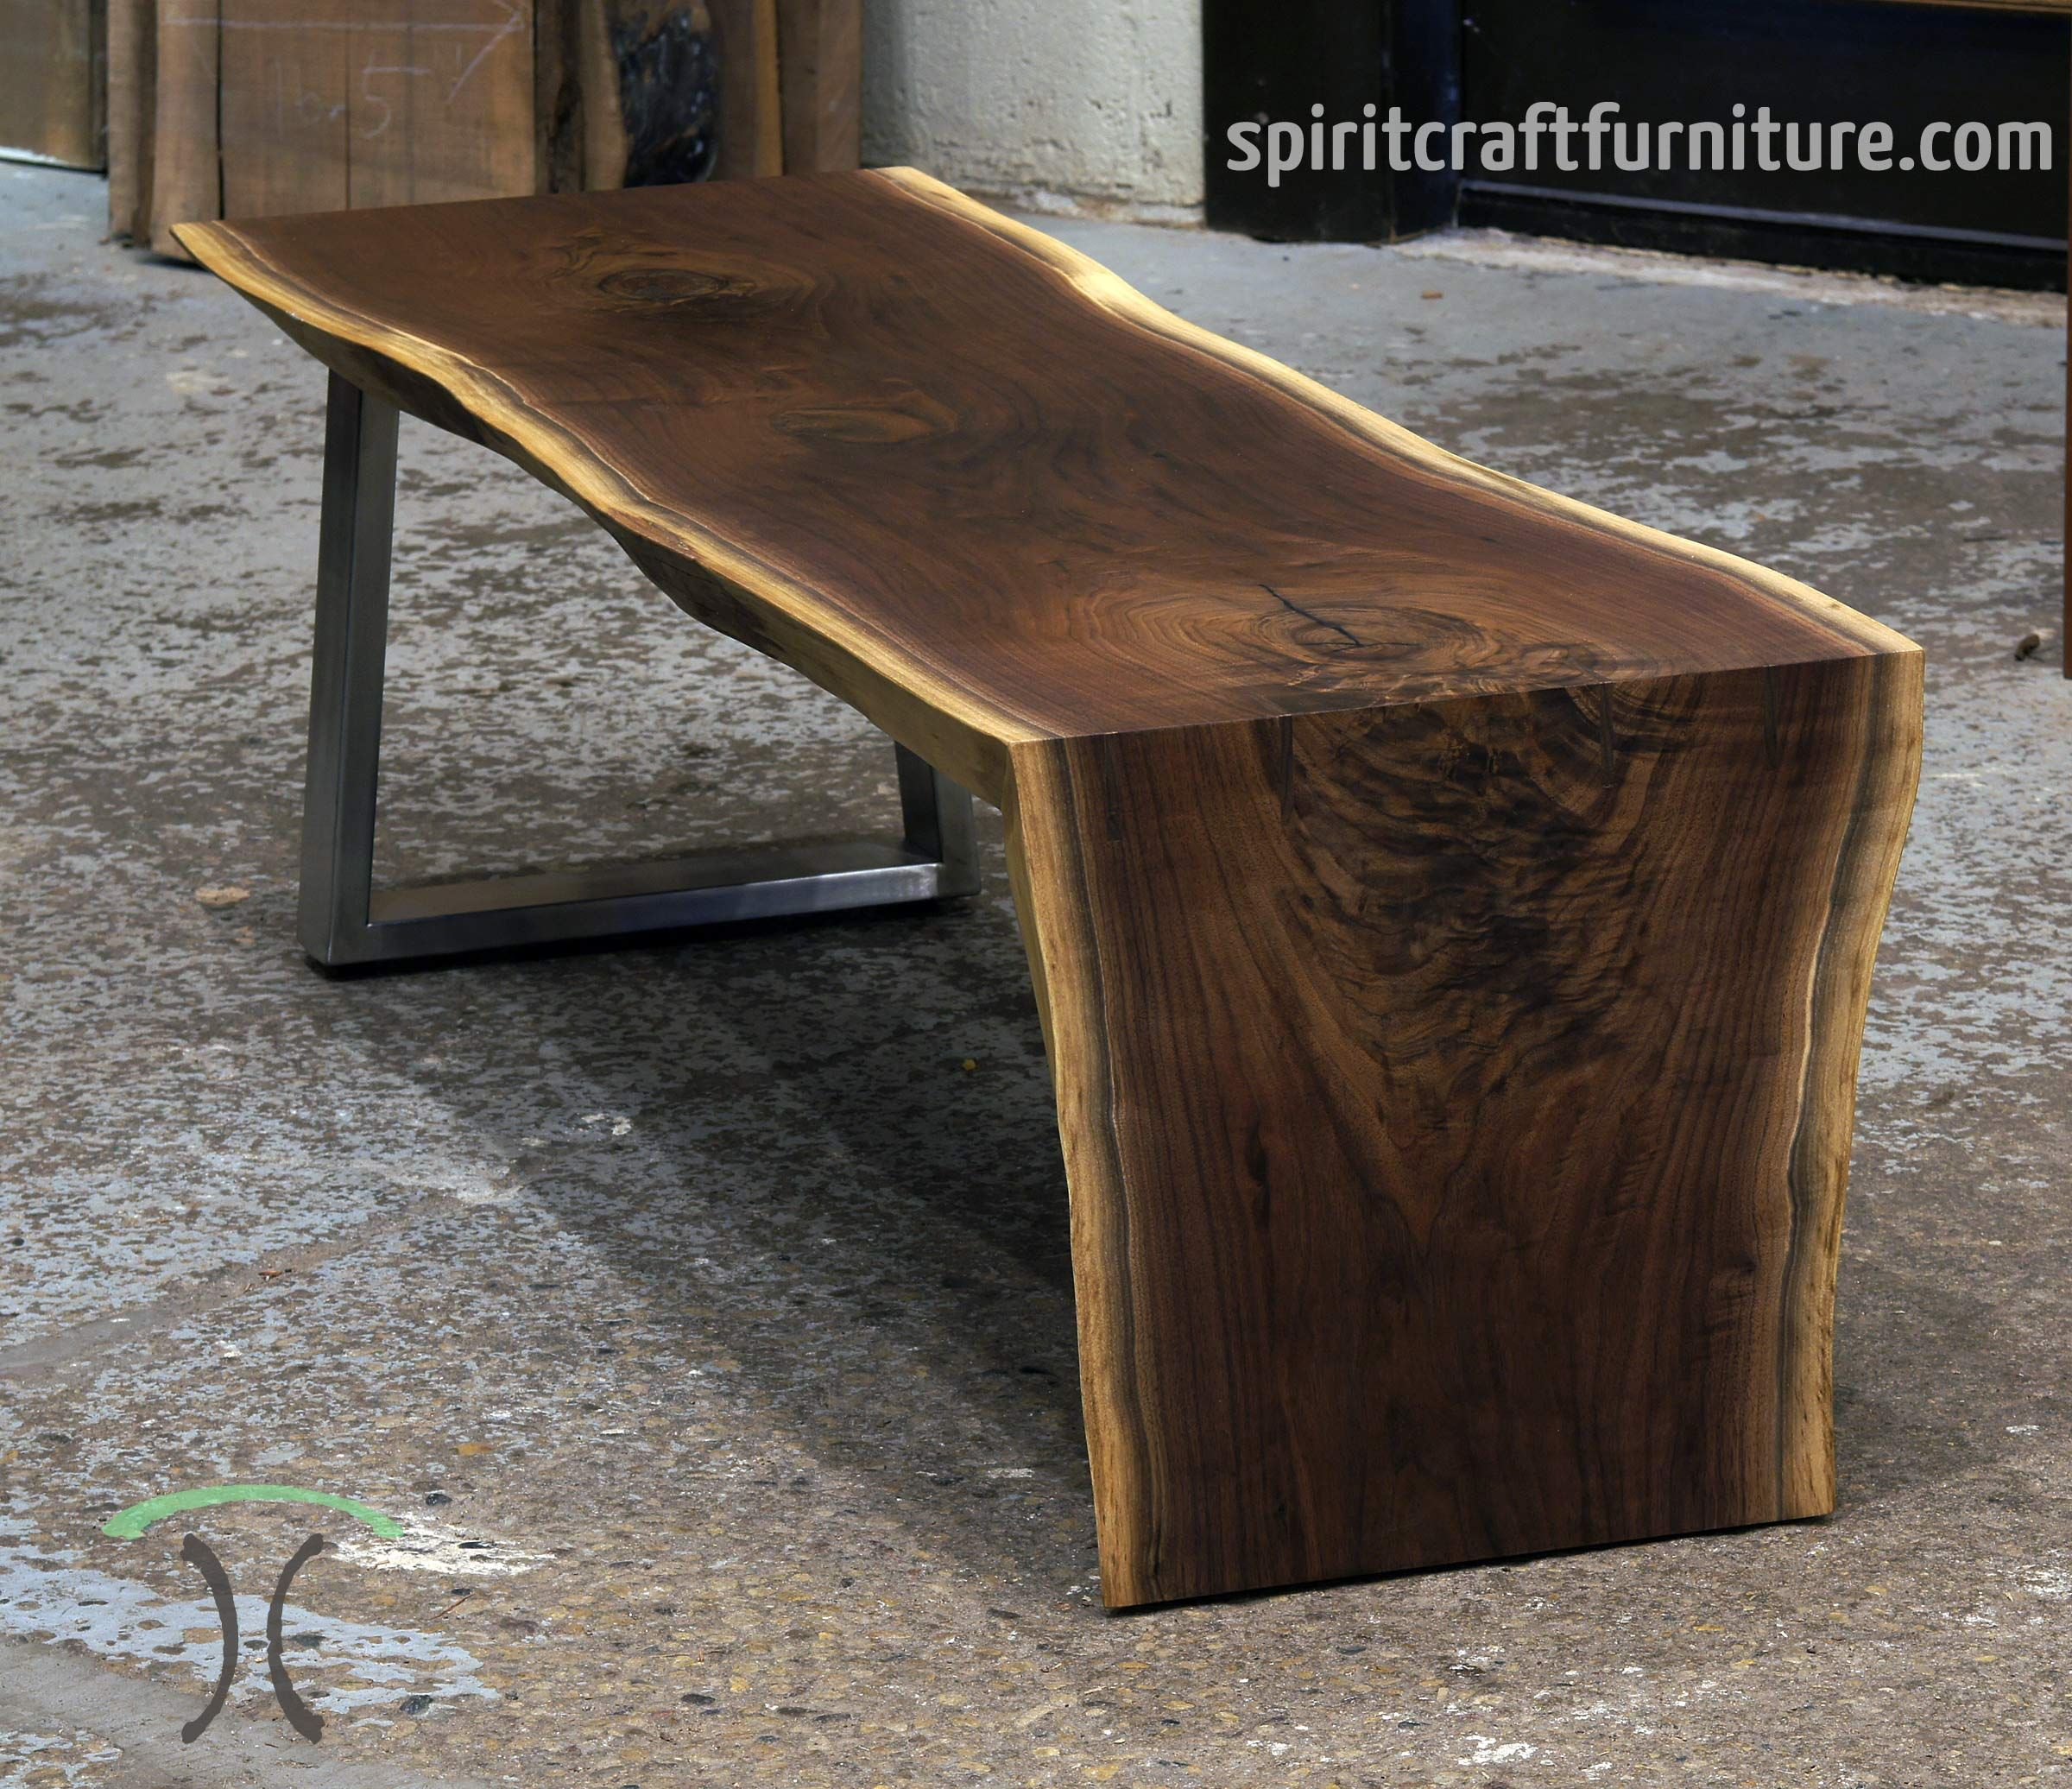 Vintage Industrial Live Edge Walnut Slab Coffee Table: Image Result For Wood Slab Waterfall Edge Island